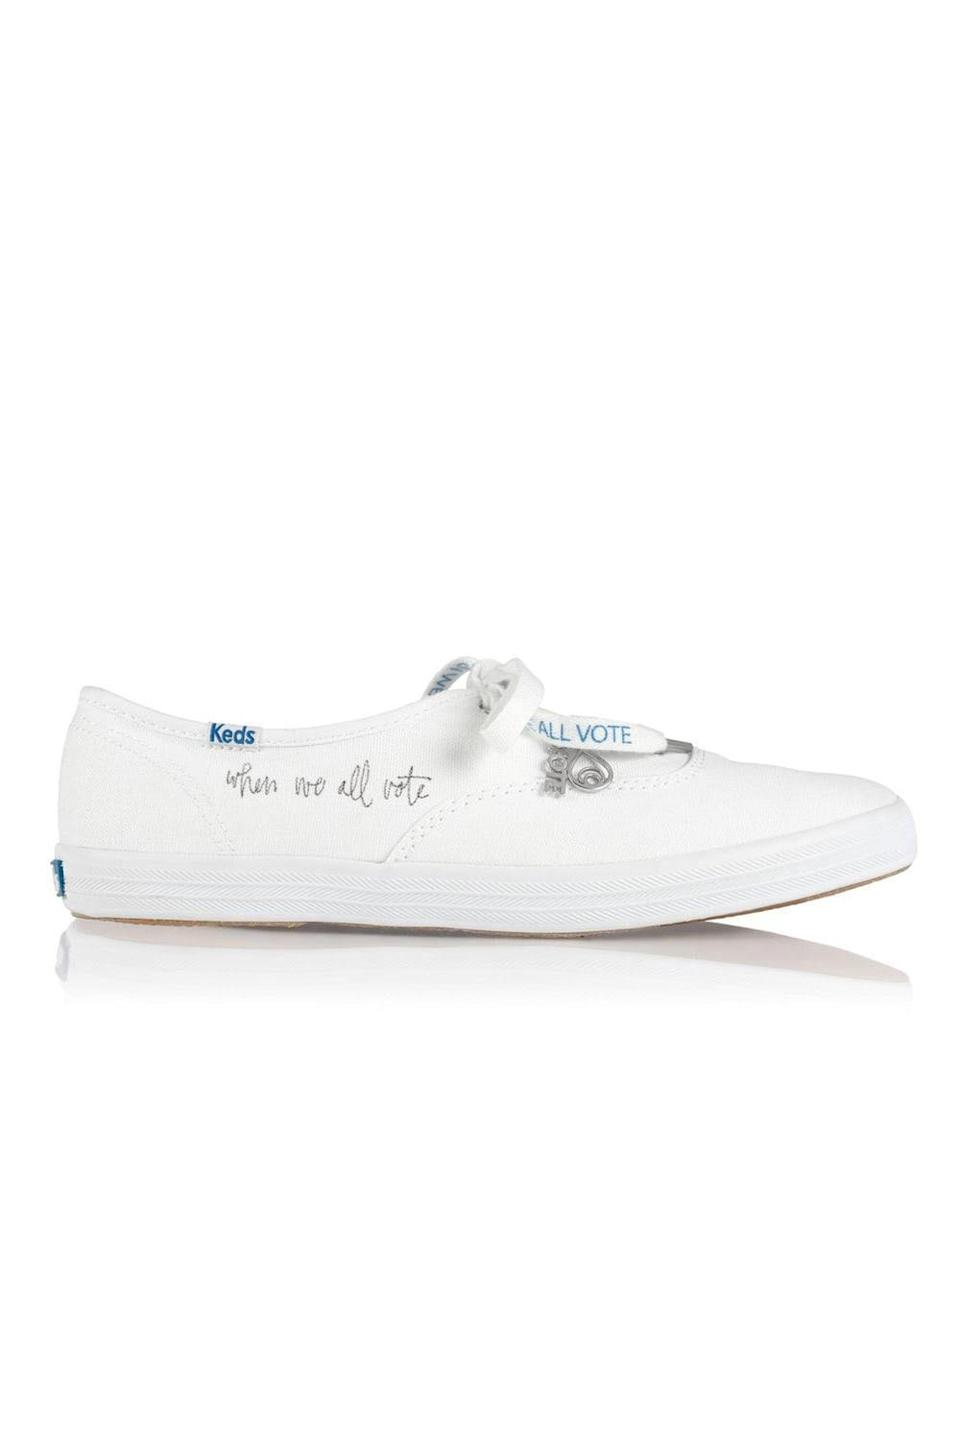 """<p><strong>Brother Vellies x Keds</strong></p><p>brothervellies.com</p><p><strong>$95.00</strong></p><p><a href=""""https://brothervellies.com/products/when-we-all-vote-x-brother-vellies-canvassing-sneakers"""" rel=""""nofollow noopener"""" target=""""_blank"""" data-ylk=""""slk:SHOP IT"""" class=""""link rapid-noclick-resp"""">SHOP IT</a></p><p>Brother Vellies teamed up with Keds to create cute sneakers that say """"when we all vote"""" on the side. Brother Vellies will donate 100 percent of the proceeds to <a href=""""https://www.whenweallvote.org/"""" rel=""""nofollow noopener"""" target=""""_blank"""" data-ylk=""""slk:When We All Vote"""" class=""""link rapid-noclick-resp"""">When We All Vote</a>. </p>"""